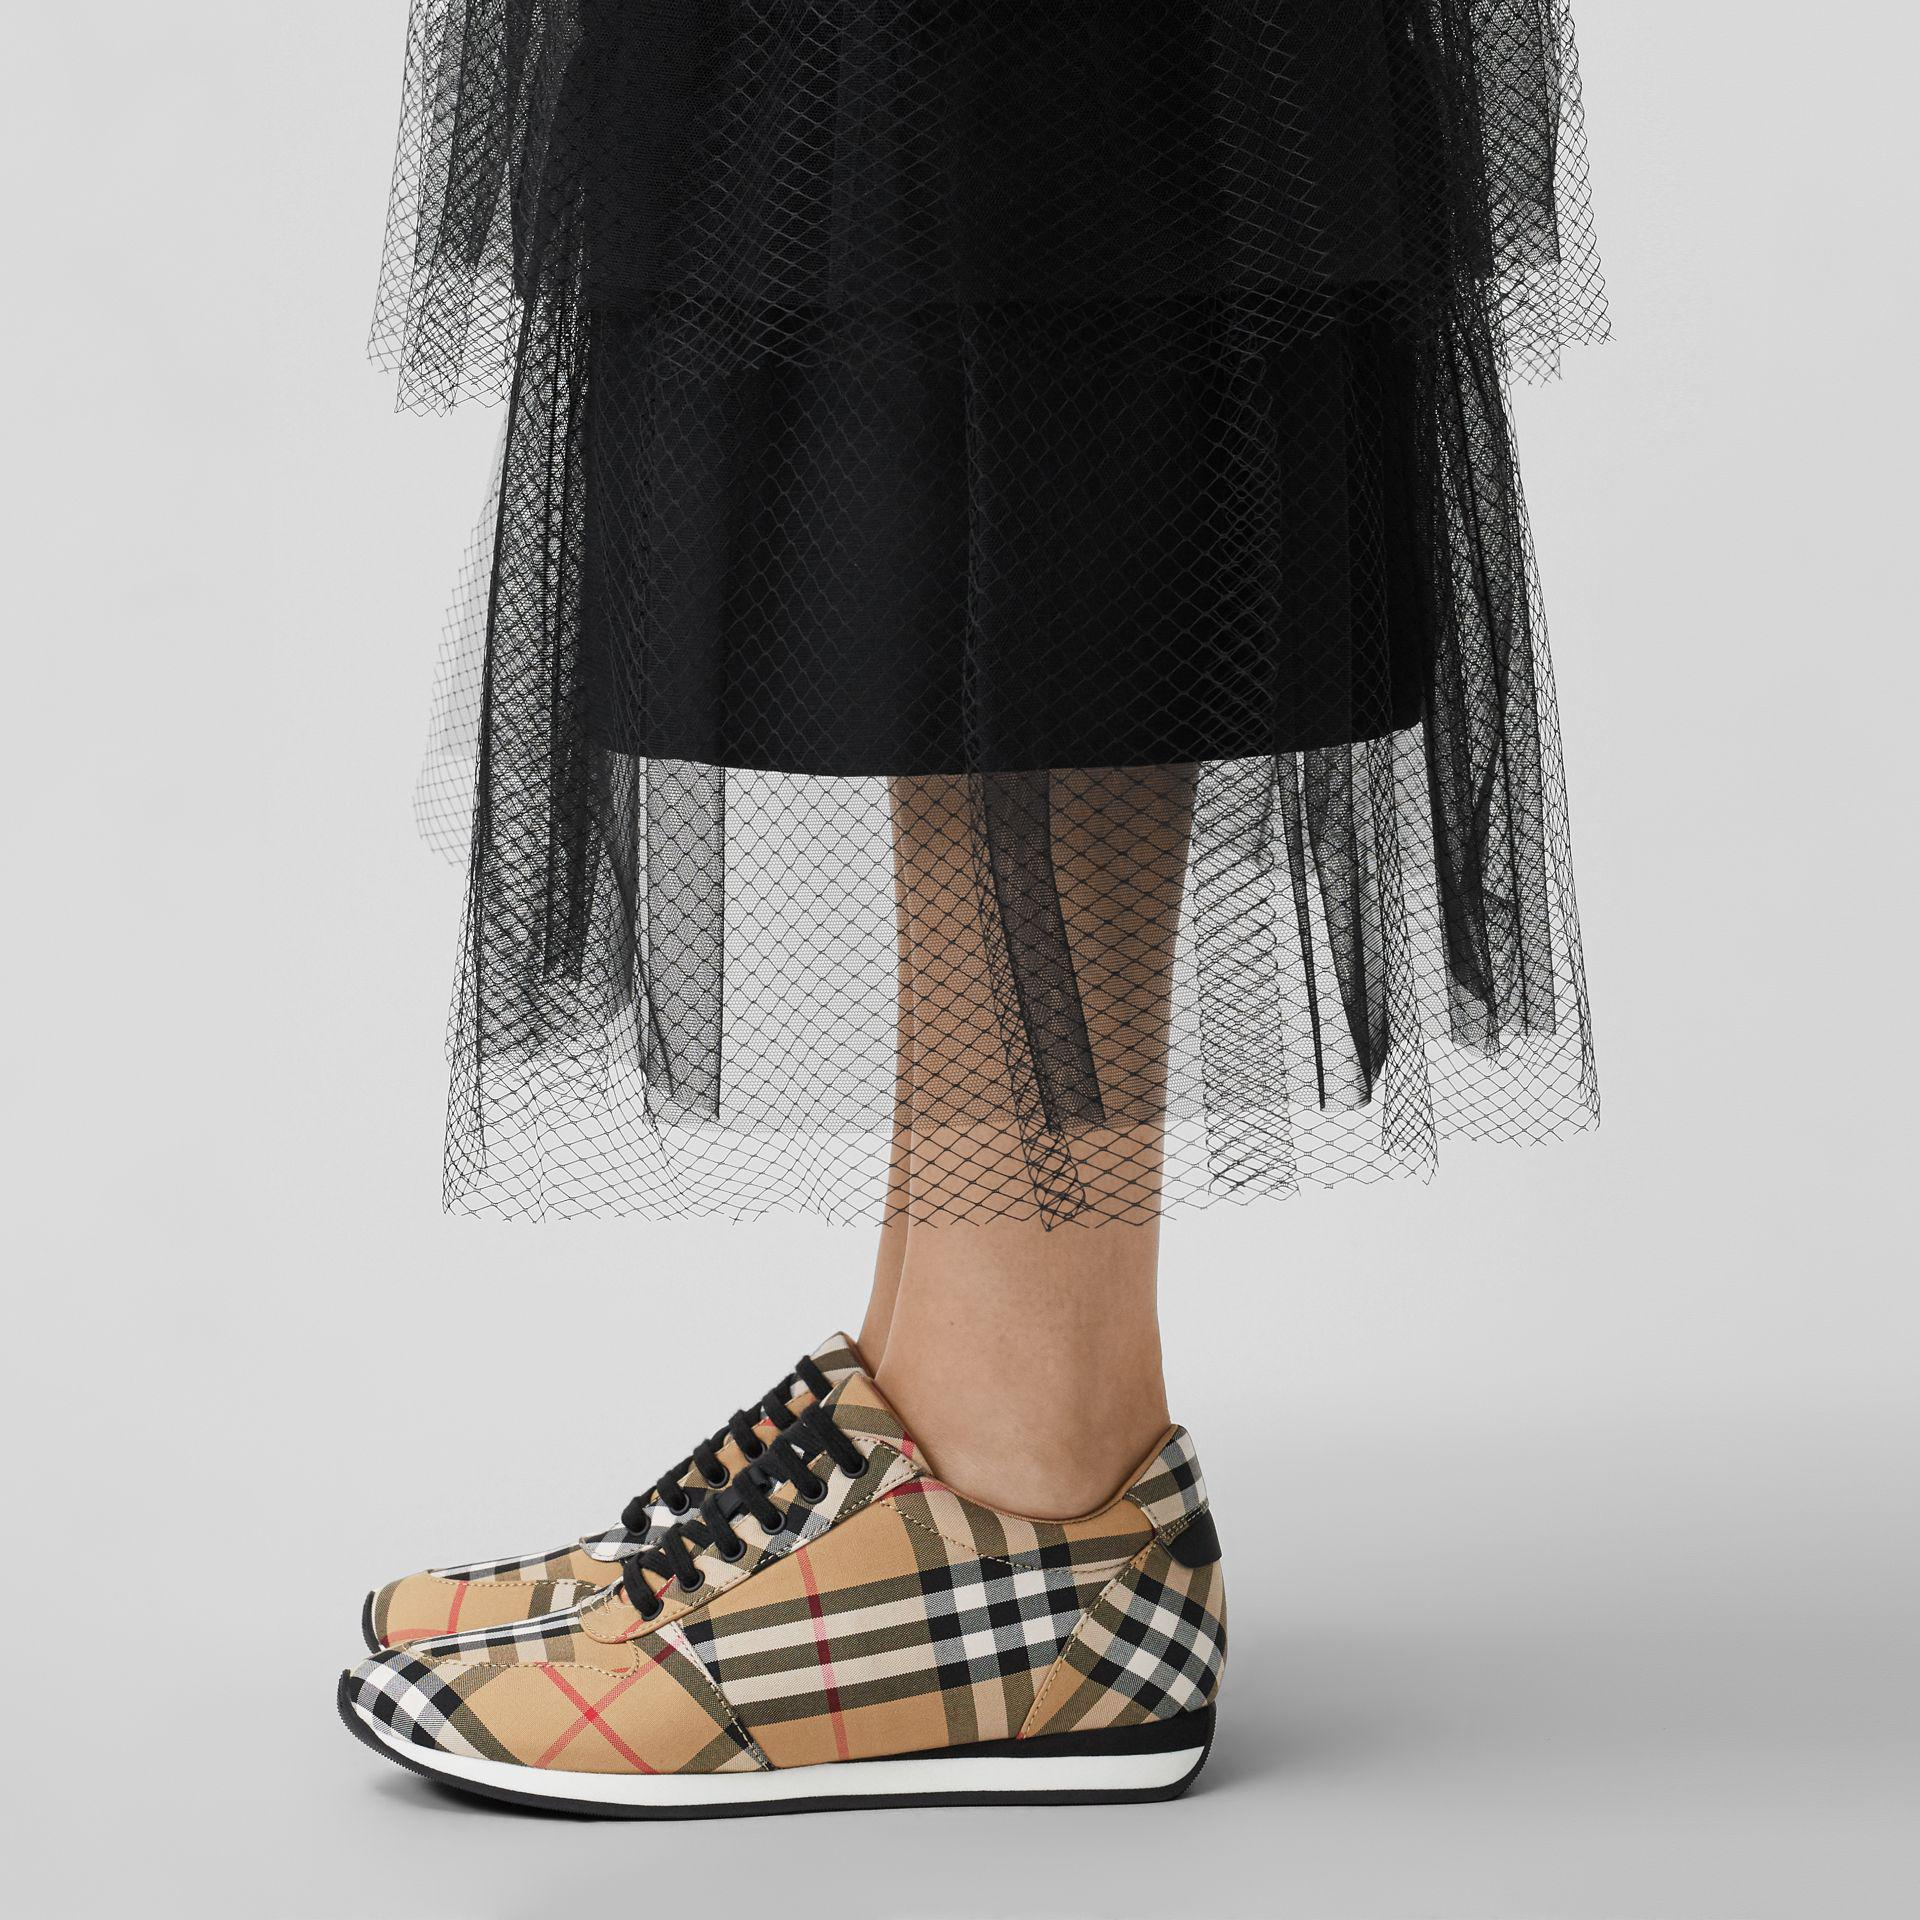 Burberry Vintage Check Cotton Sneakers